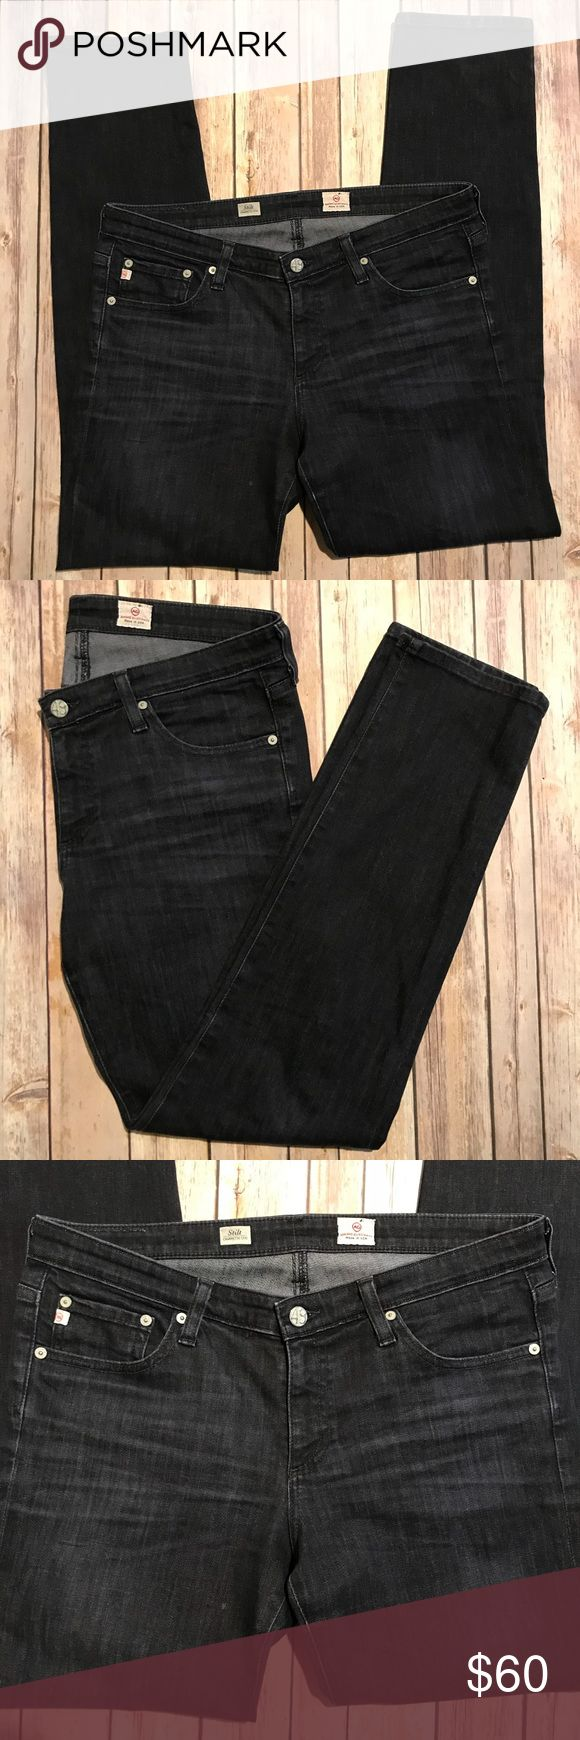 """Ag Adriano Goldschmied 'Stilt Cigarette Leg' jeans Adriano Goldschmied 'Stilt Cigarette Leg' jeans • black faded wash • size 31R • gently worn but in excellent condition.  Measurements: 31"""" inseam 9"""" front rise Last photo is picture of style but actual jeans for sale are a black wash (not a dark blue like in the photo) Ag Adriano Goldschmied Jeans Straight Leg"""